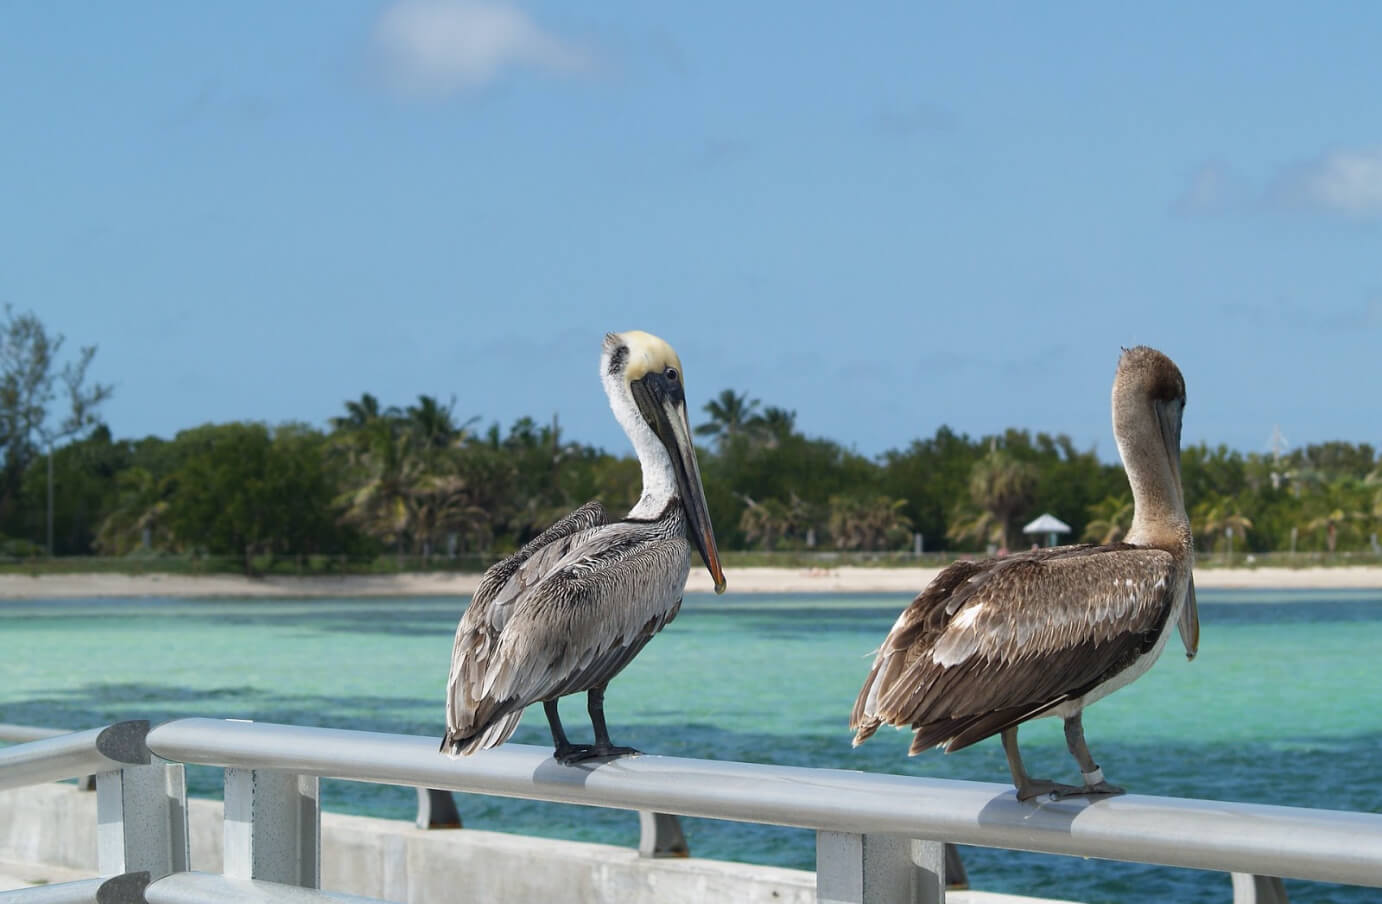 Two Brown Pelicans perched atop a pier's railing facing towards the ocean